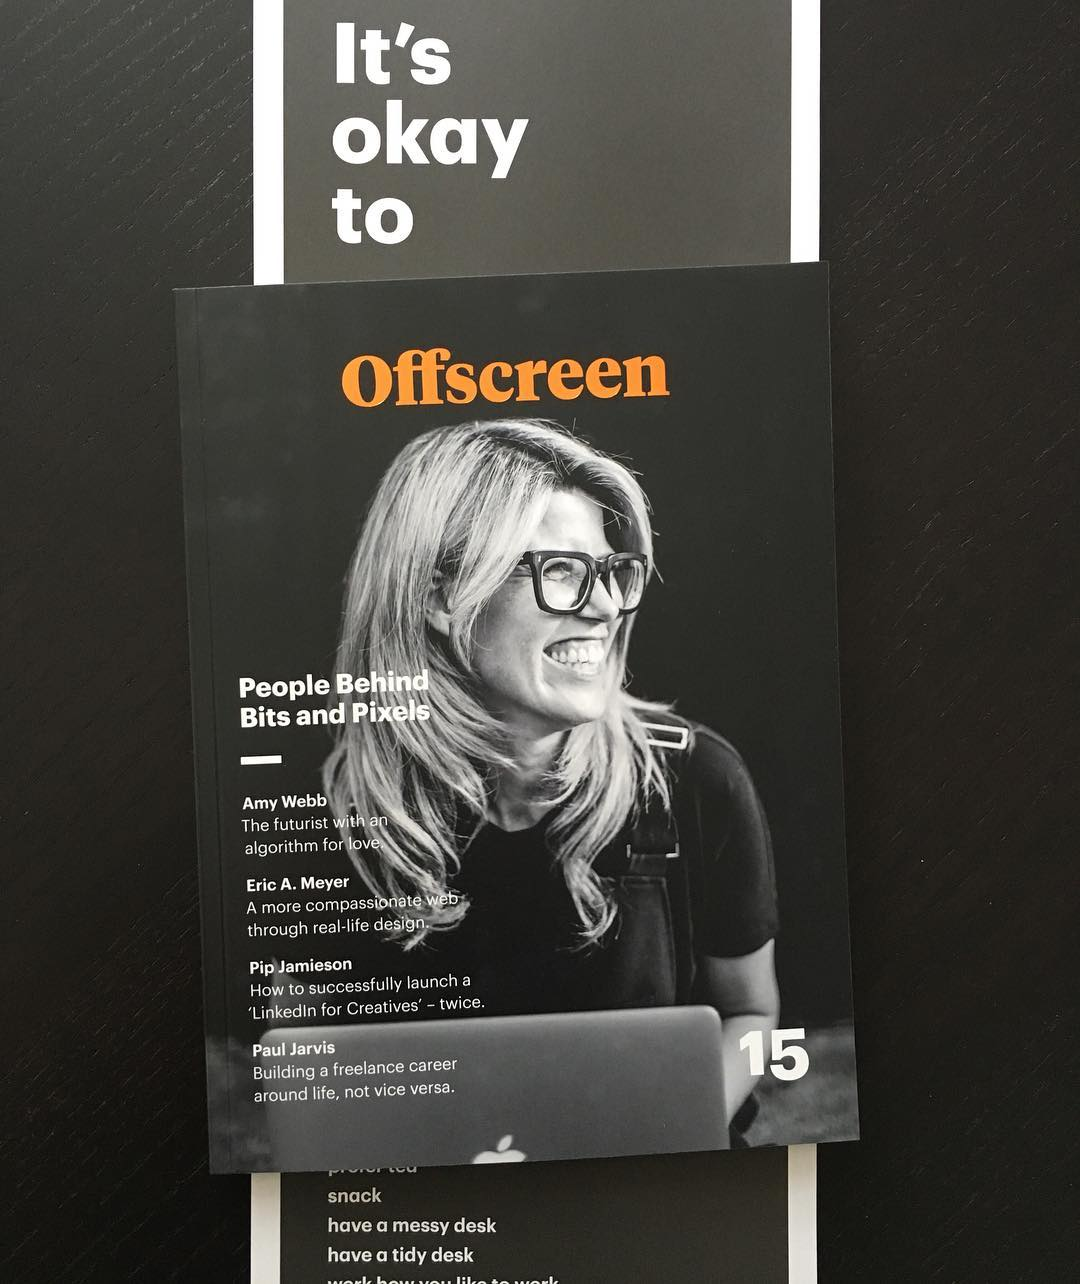 It's okay to read the new arrived @offscreenmag when you actually should work #offscreenmag